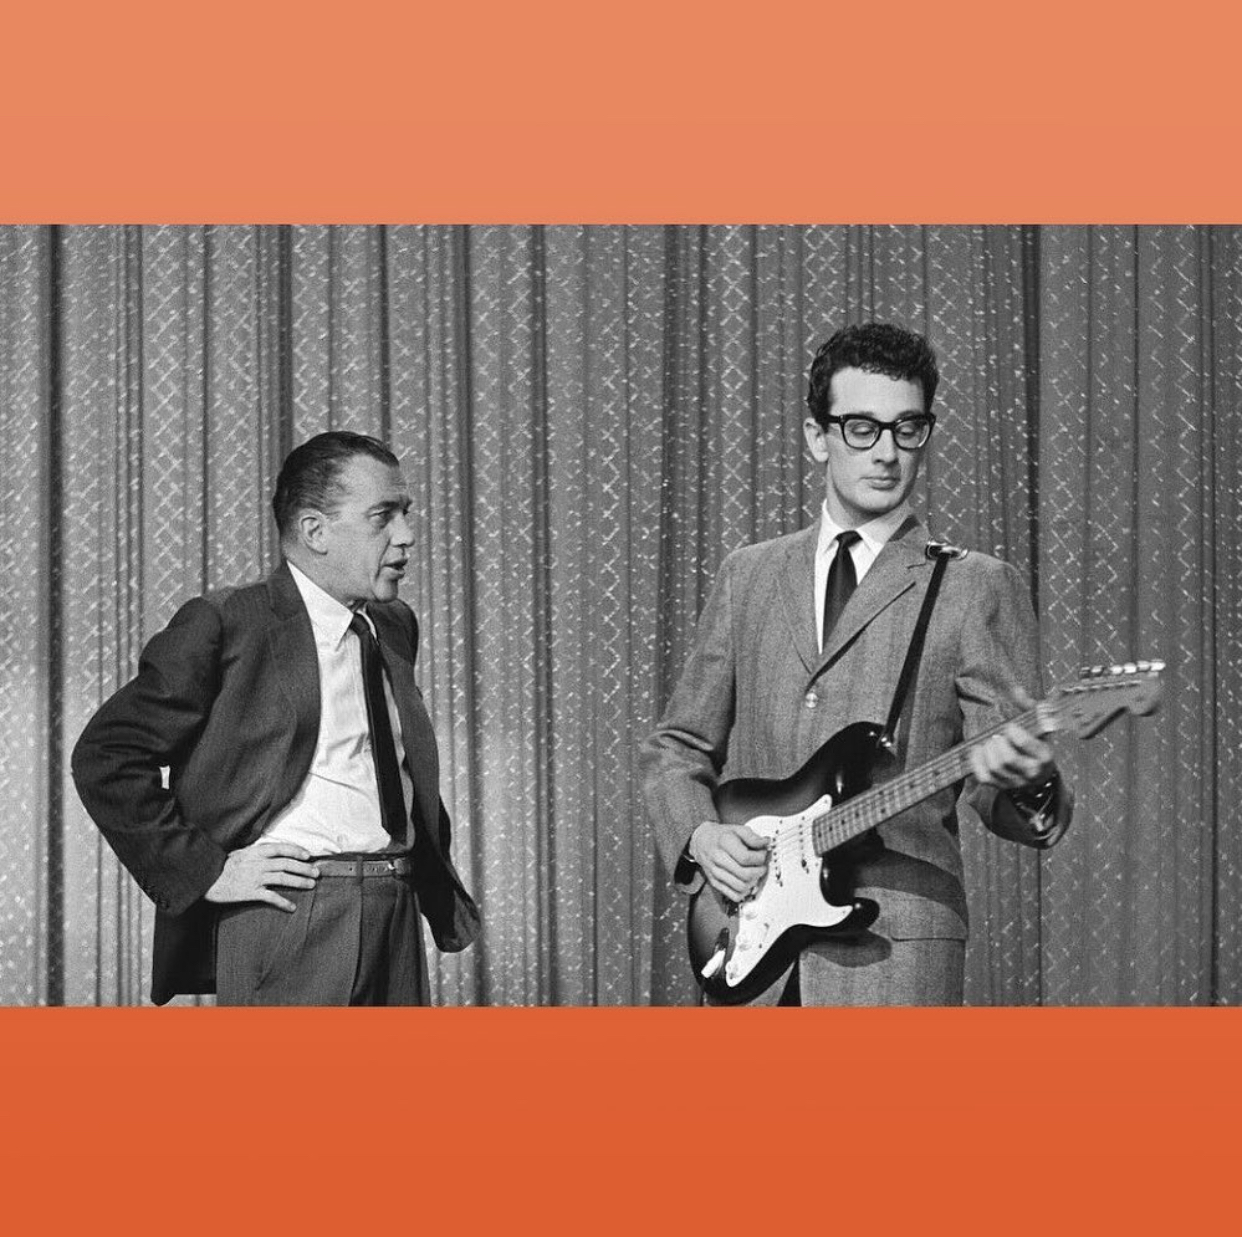 Buddy Holly with his Fender Stratocaster